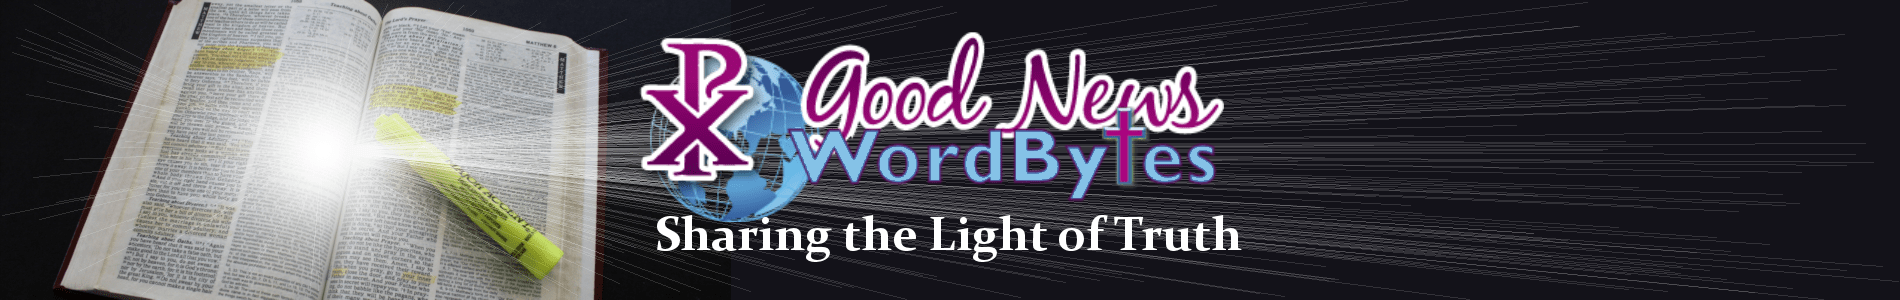 Good News WordBytes - Sharing the Light of Truth